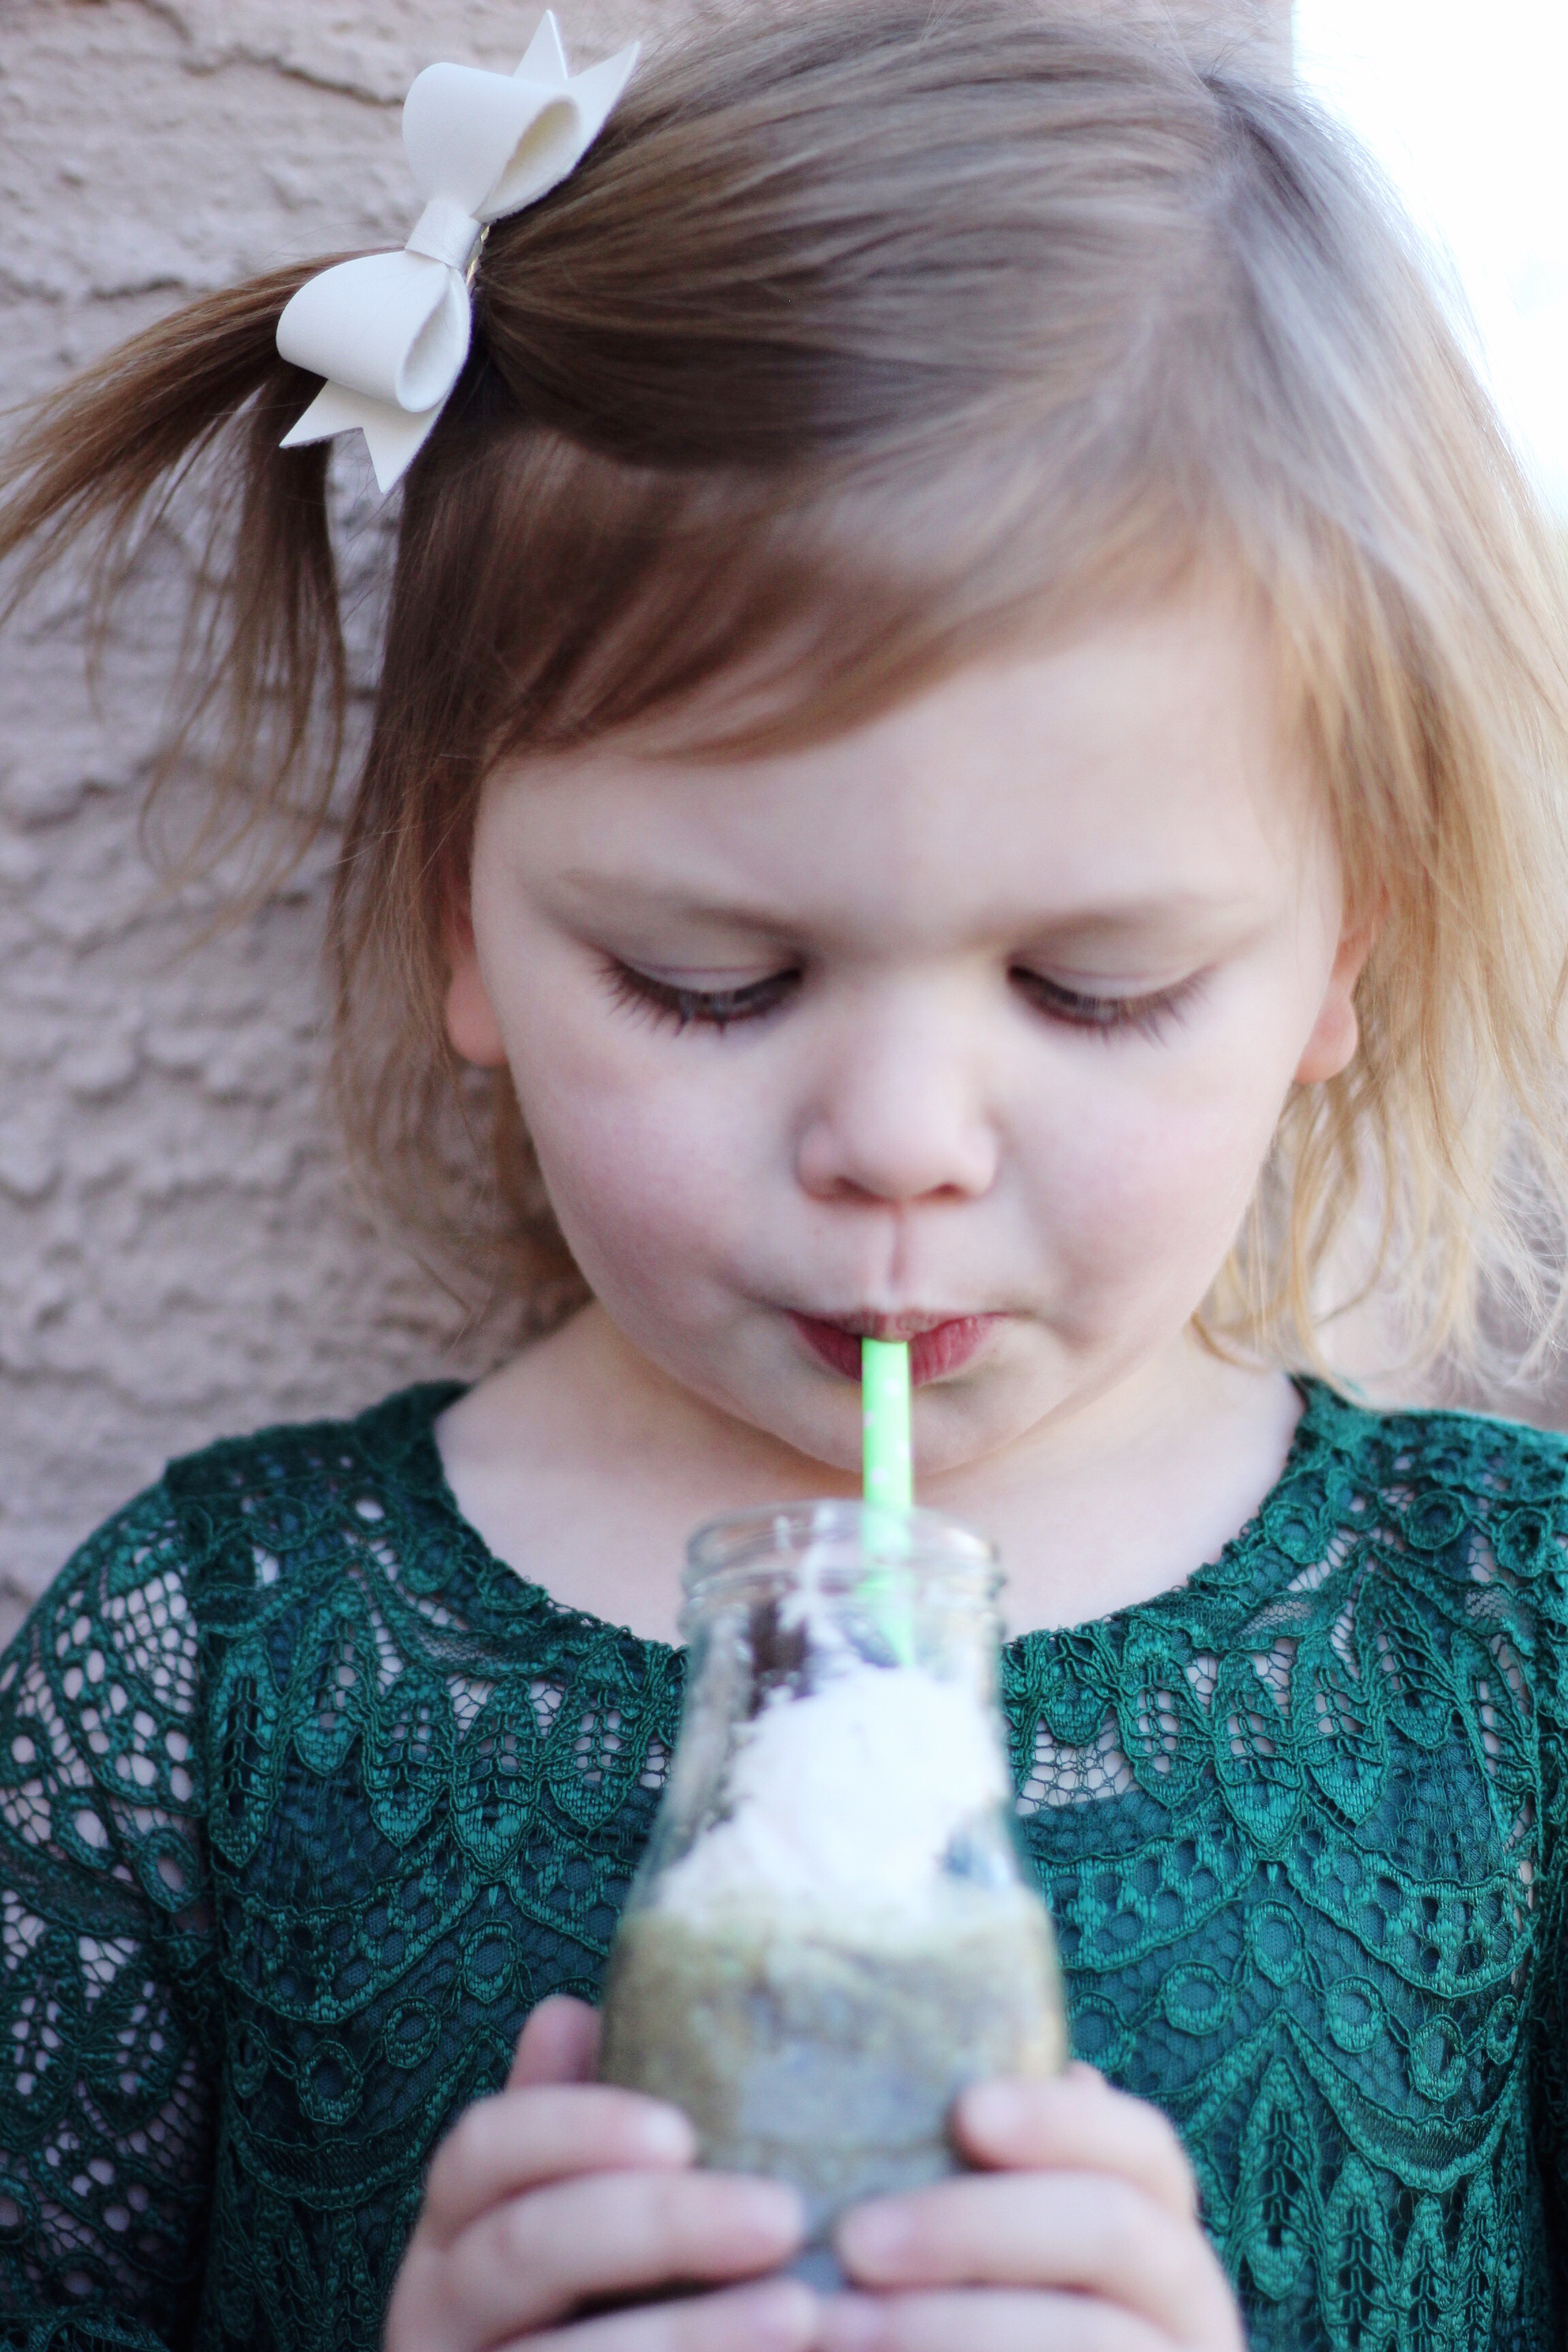 A little girl looking down at her shamrock shake